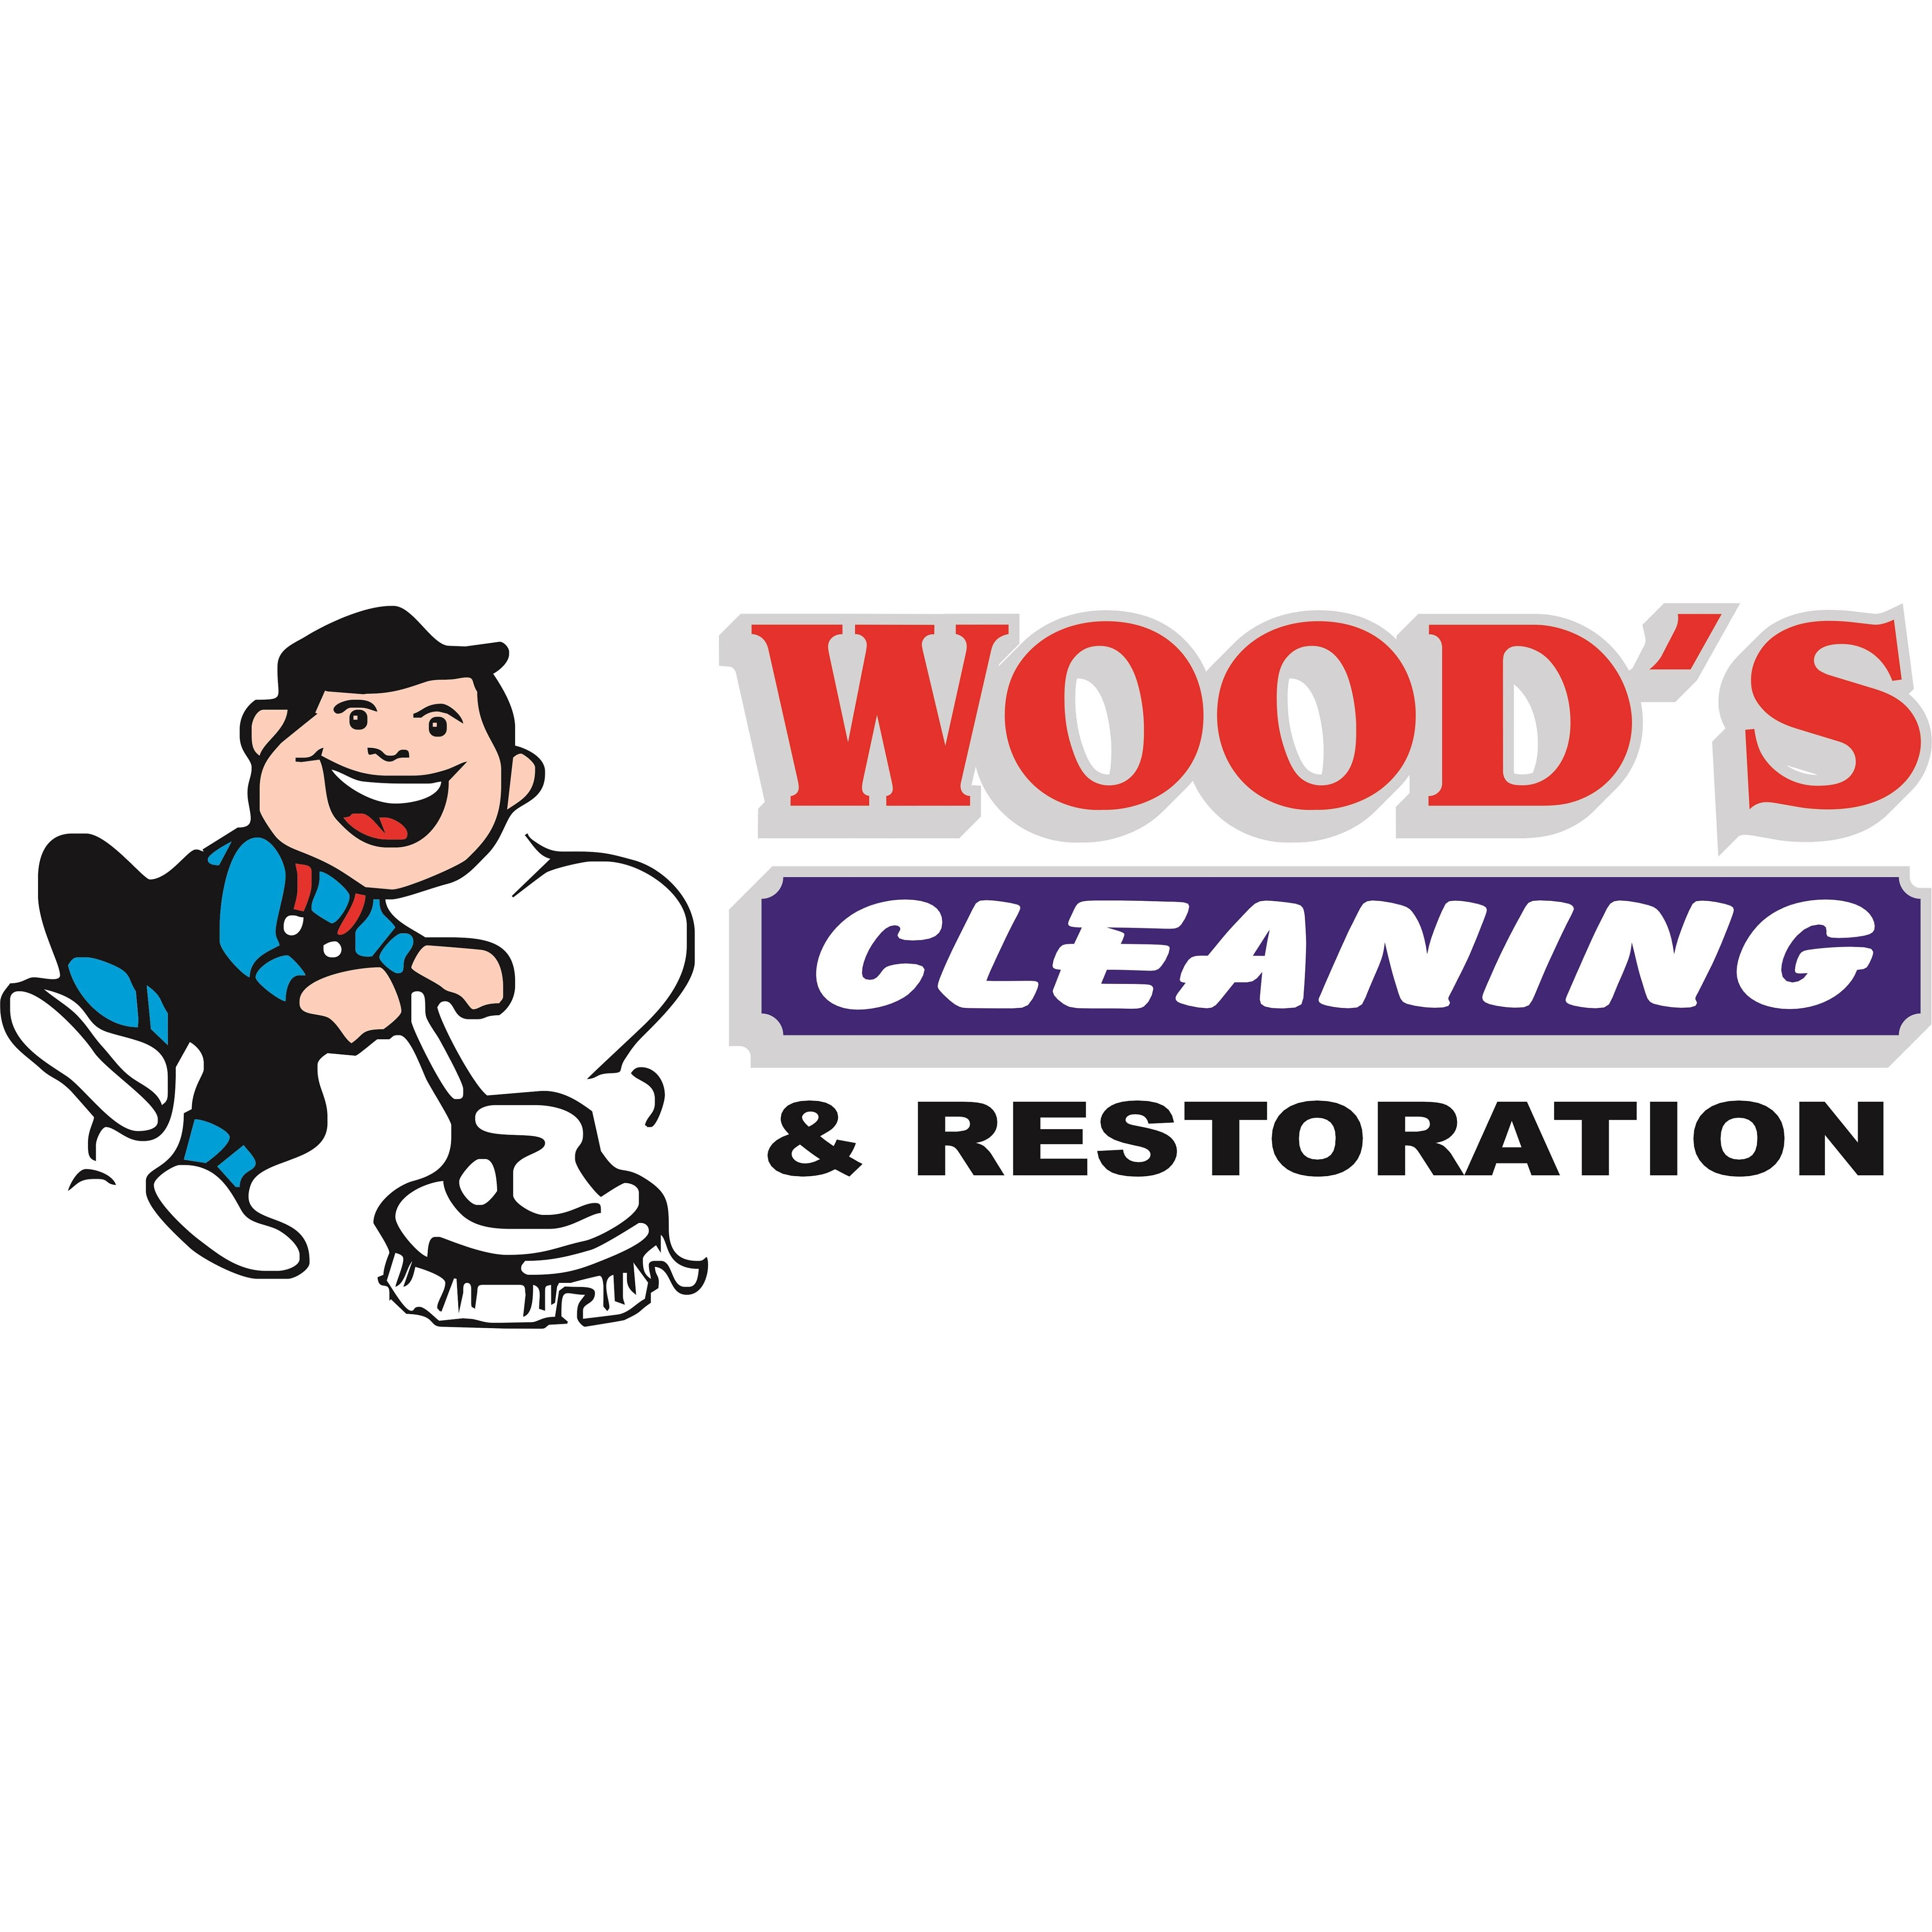 Wood's Cleaning & Restoration